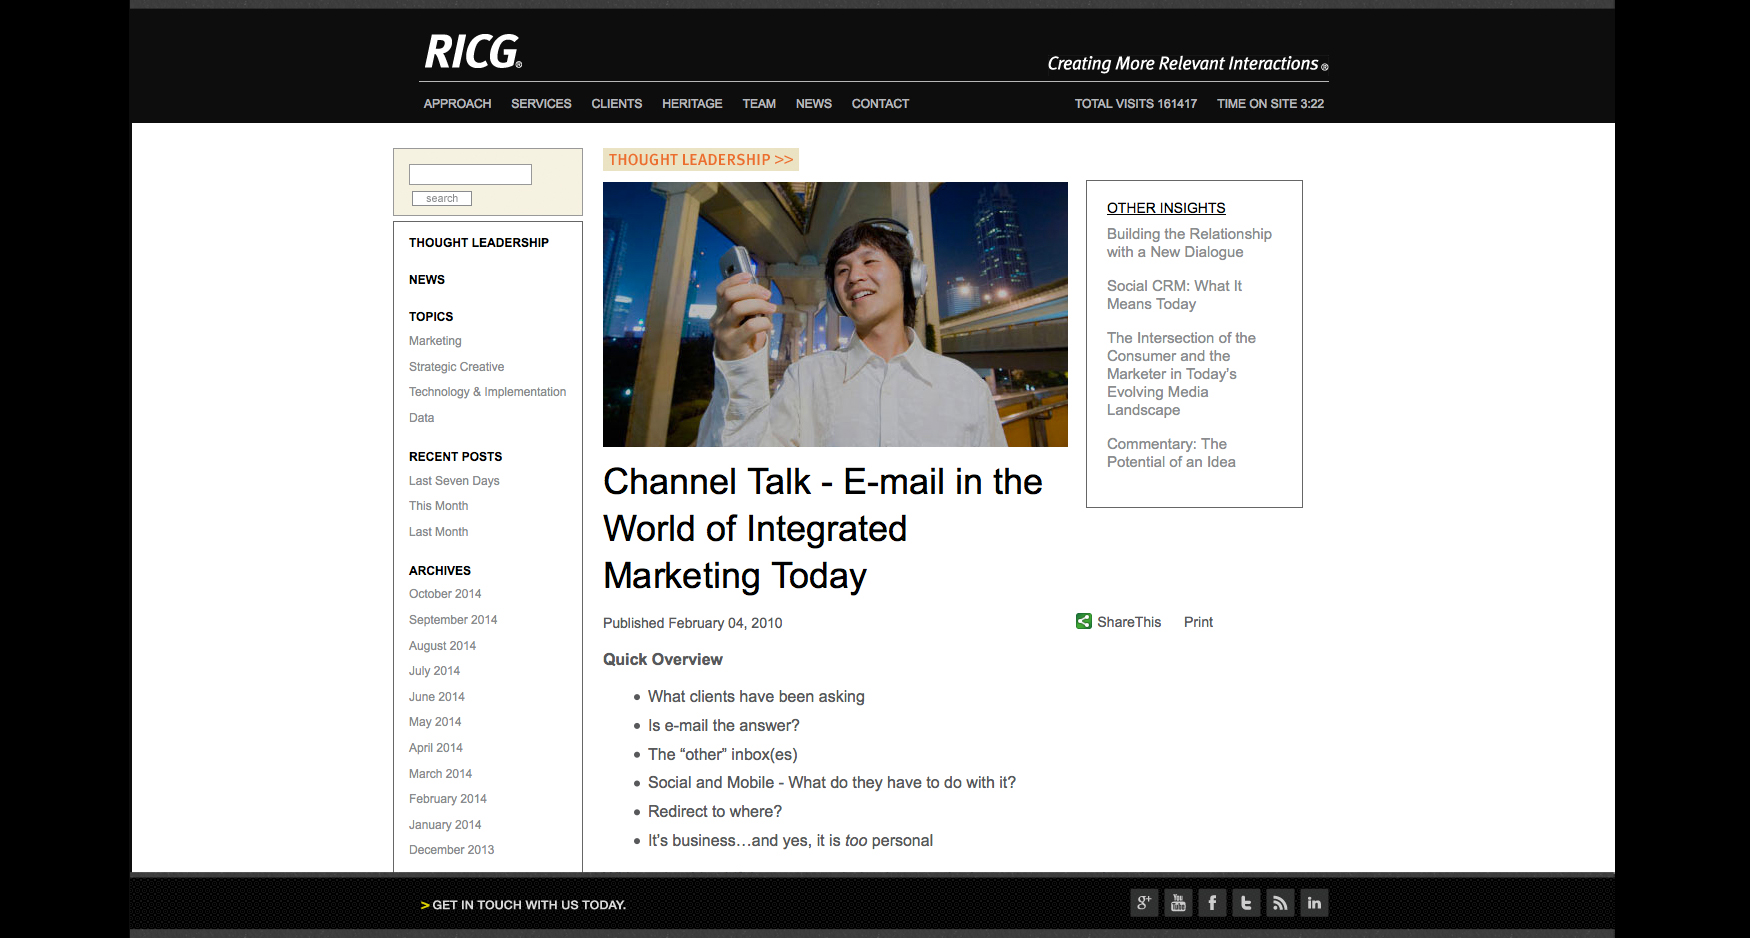 news 1 - RICG - CORPORATE WEBSITE